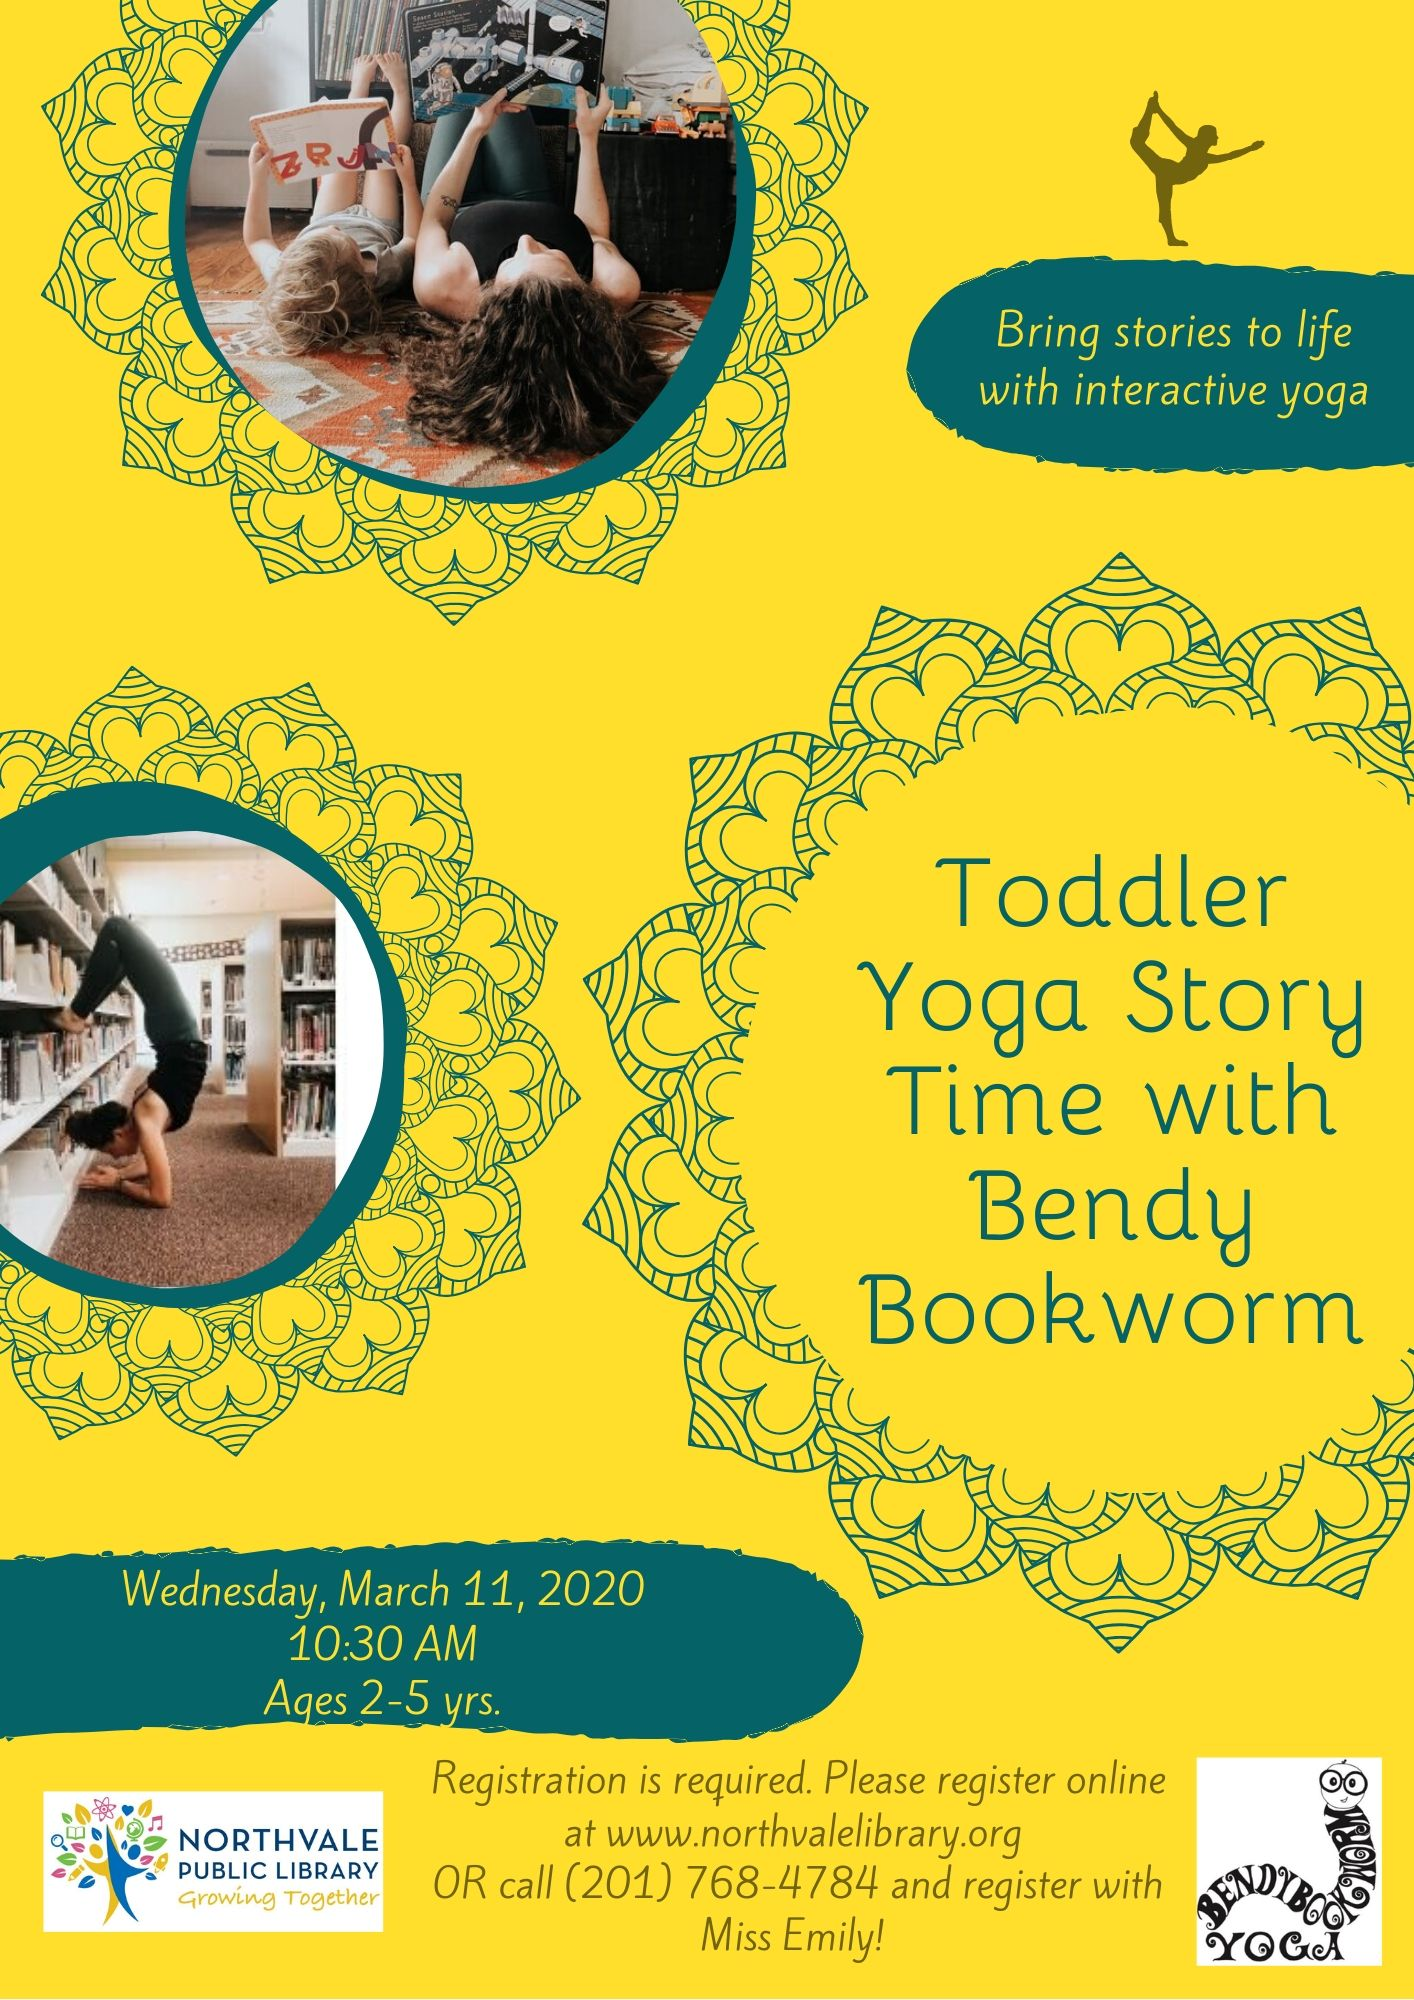 Toddler Yoga Story Time with Bendy Bookworm